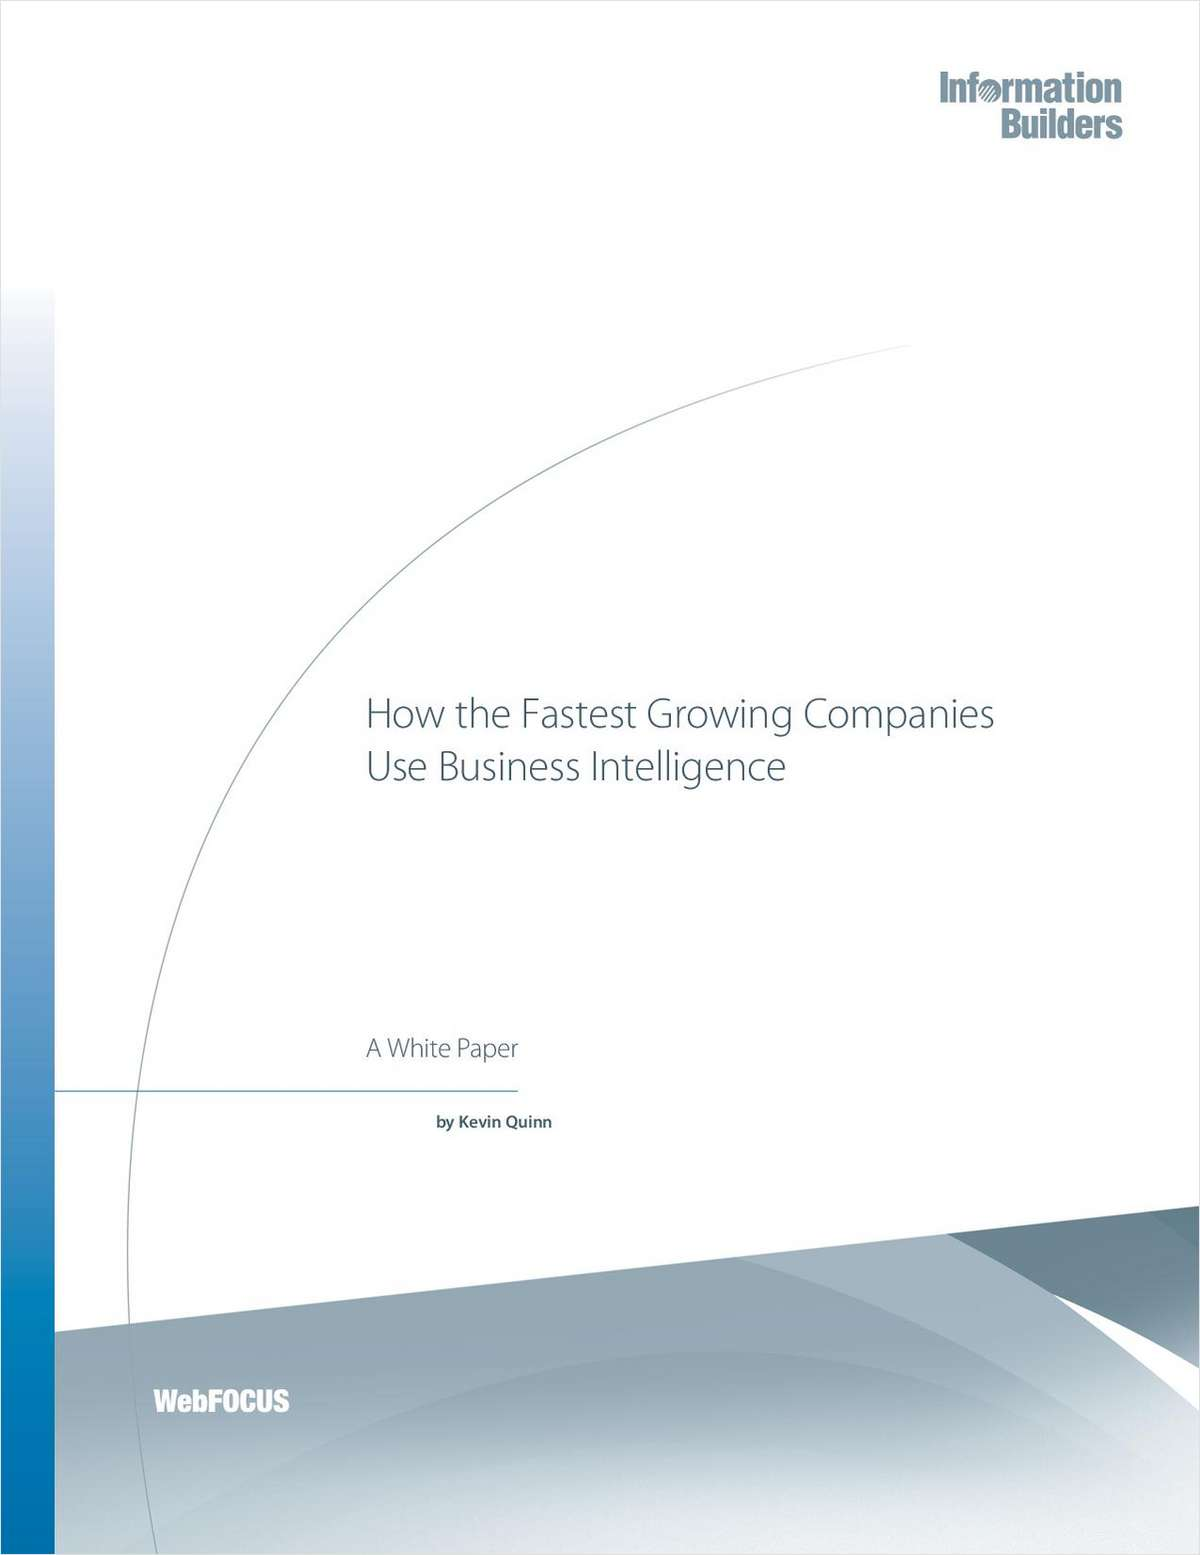 How the Fastest Growing Companies Use BI